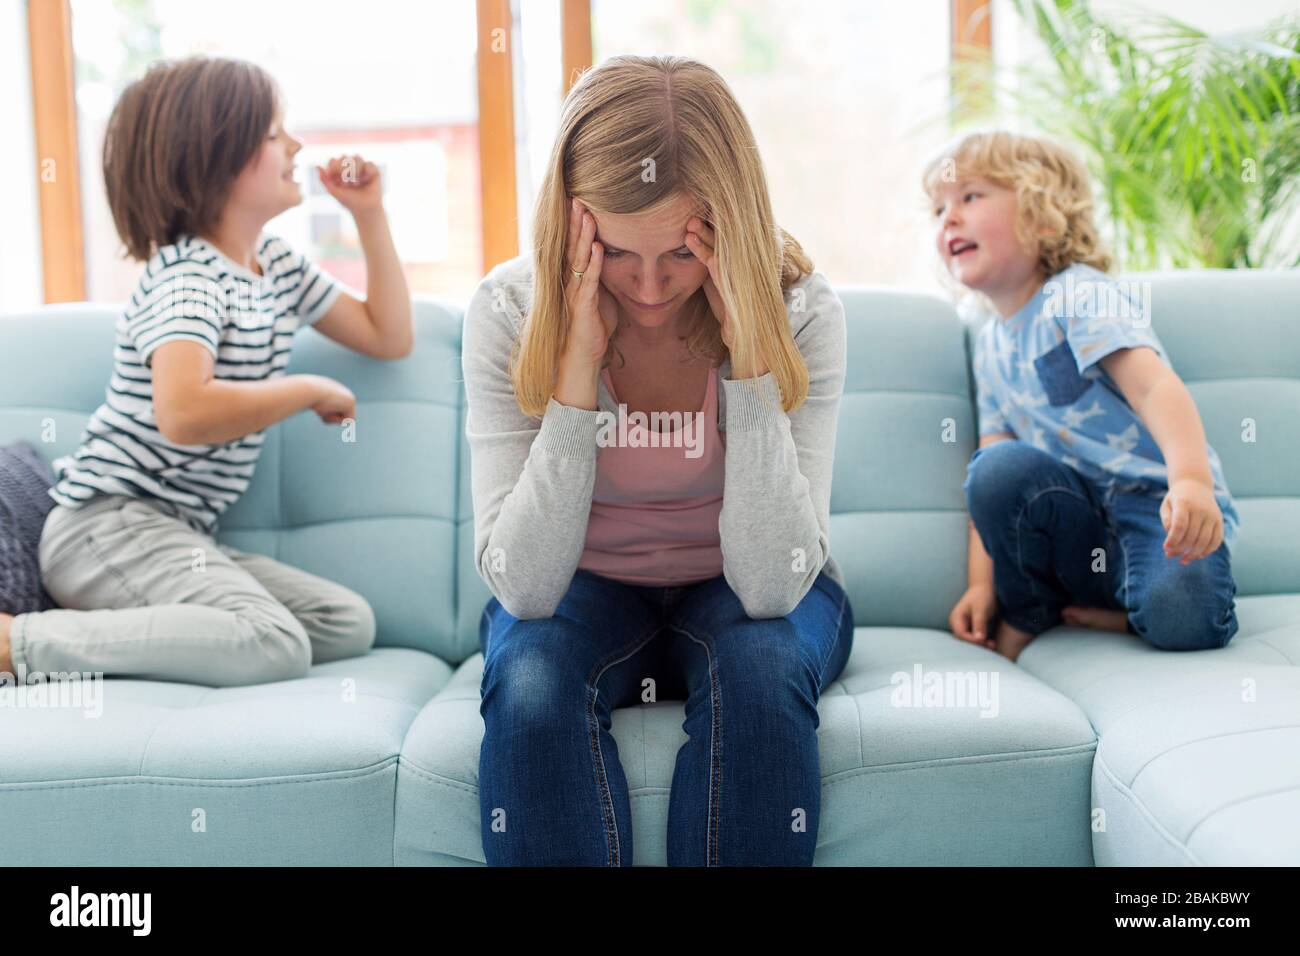 Mother with headache and children jumping on sofa Stock Photo